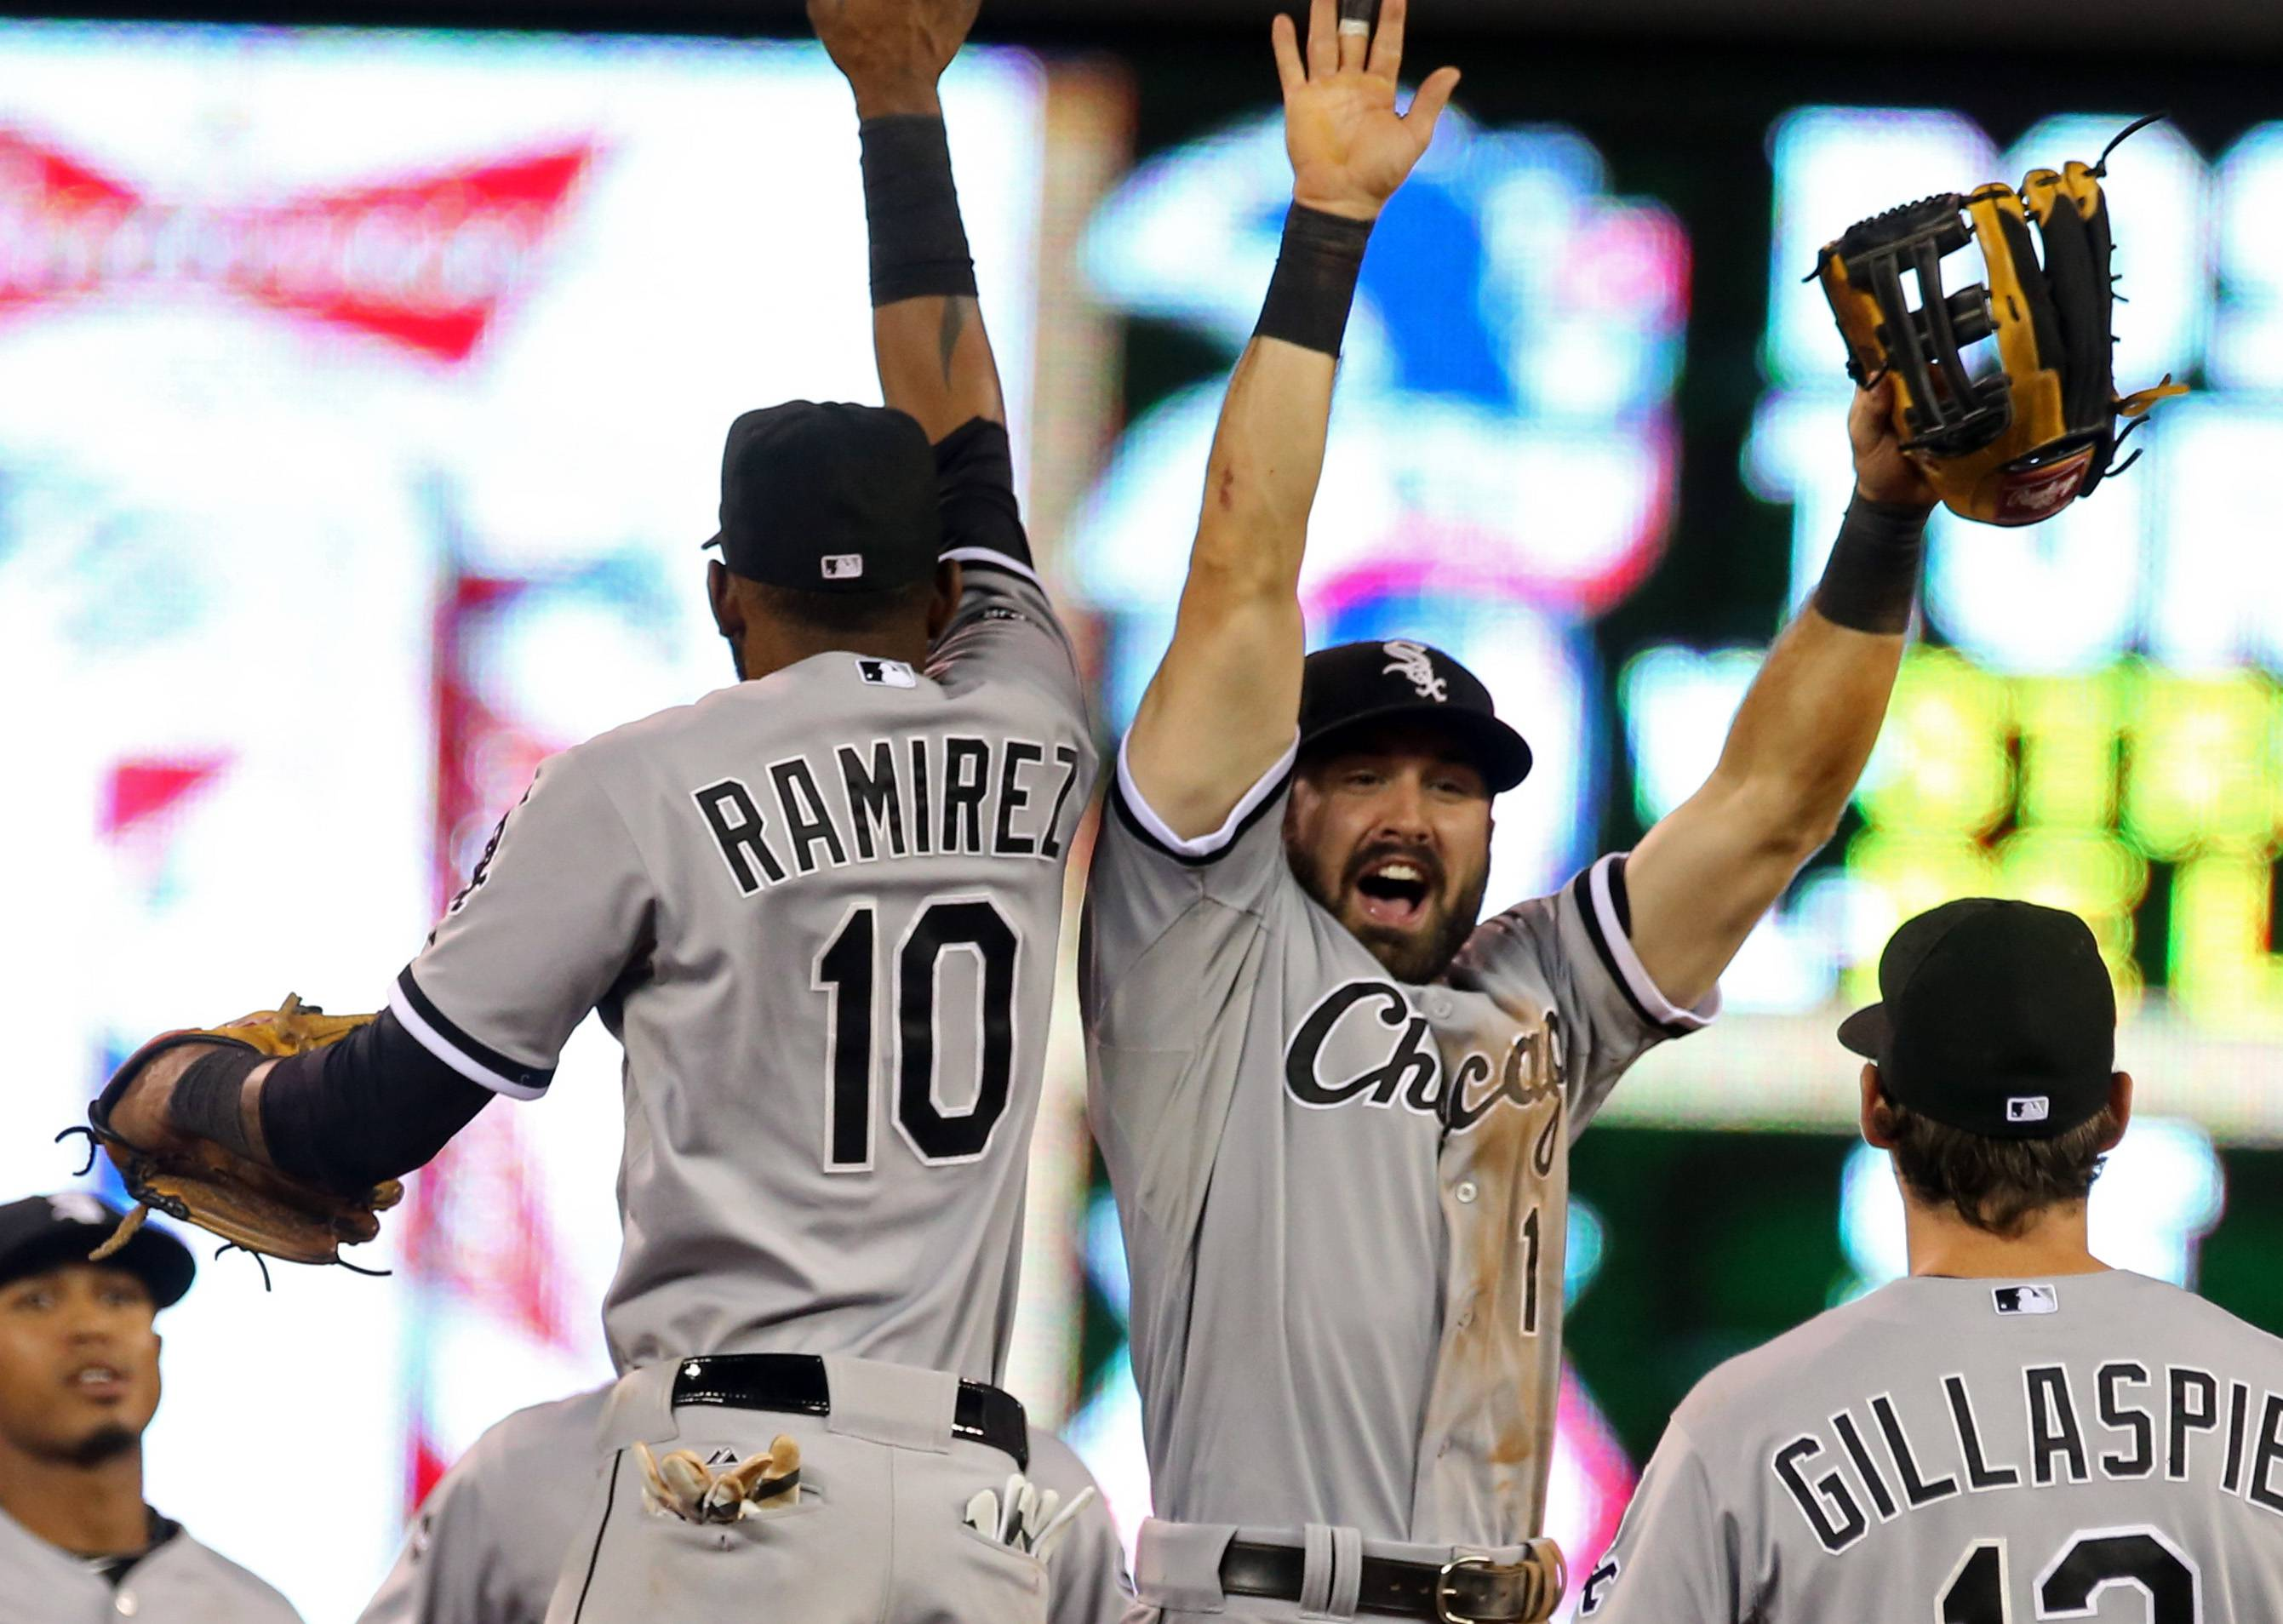 Chicago White Sox' Adam Eaton (1) and Alexei Ramirez celebrate after they defeated the Minnesota Twins 5-2 in a baseball game on Thursday, July 24, 2014, in Minneapolis.